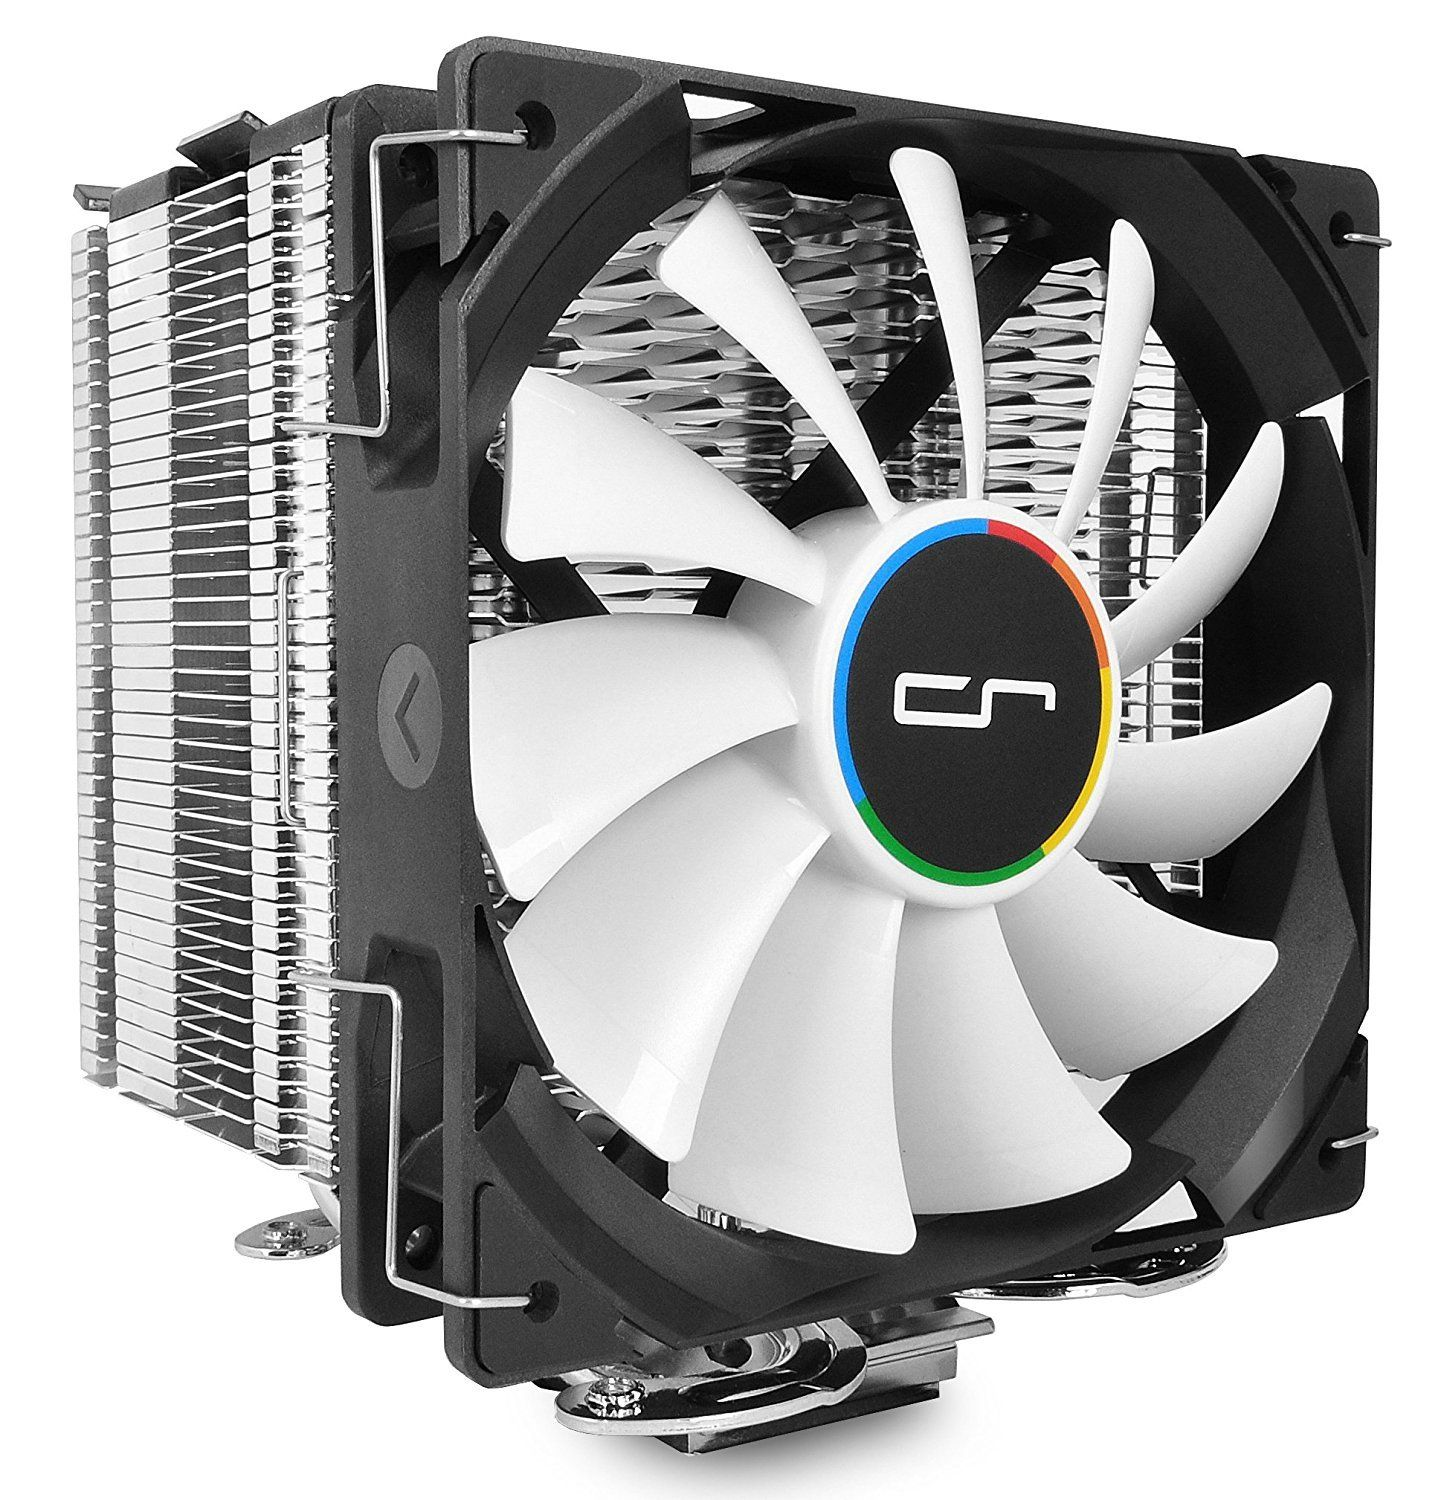 CRYORIG H7 Tower Cooler For AMD/Intel CPU's Cooler